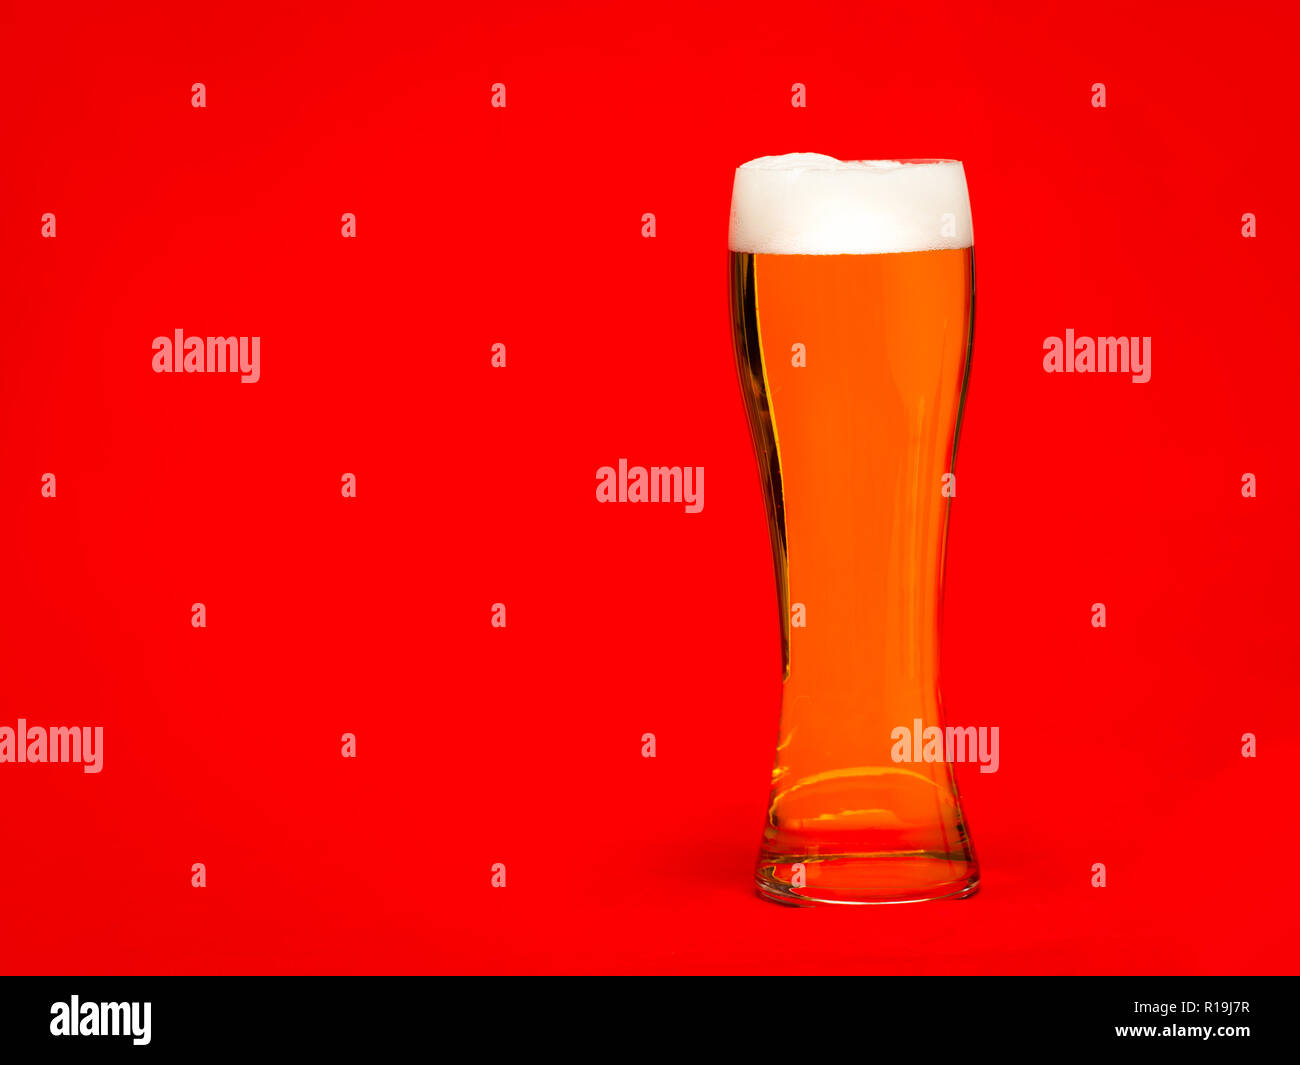 Full pilsner glass of pale lager beer or ale with a head of foam on red background - Stock Image